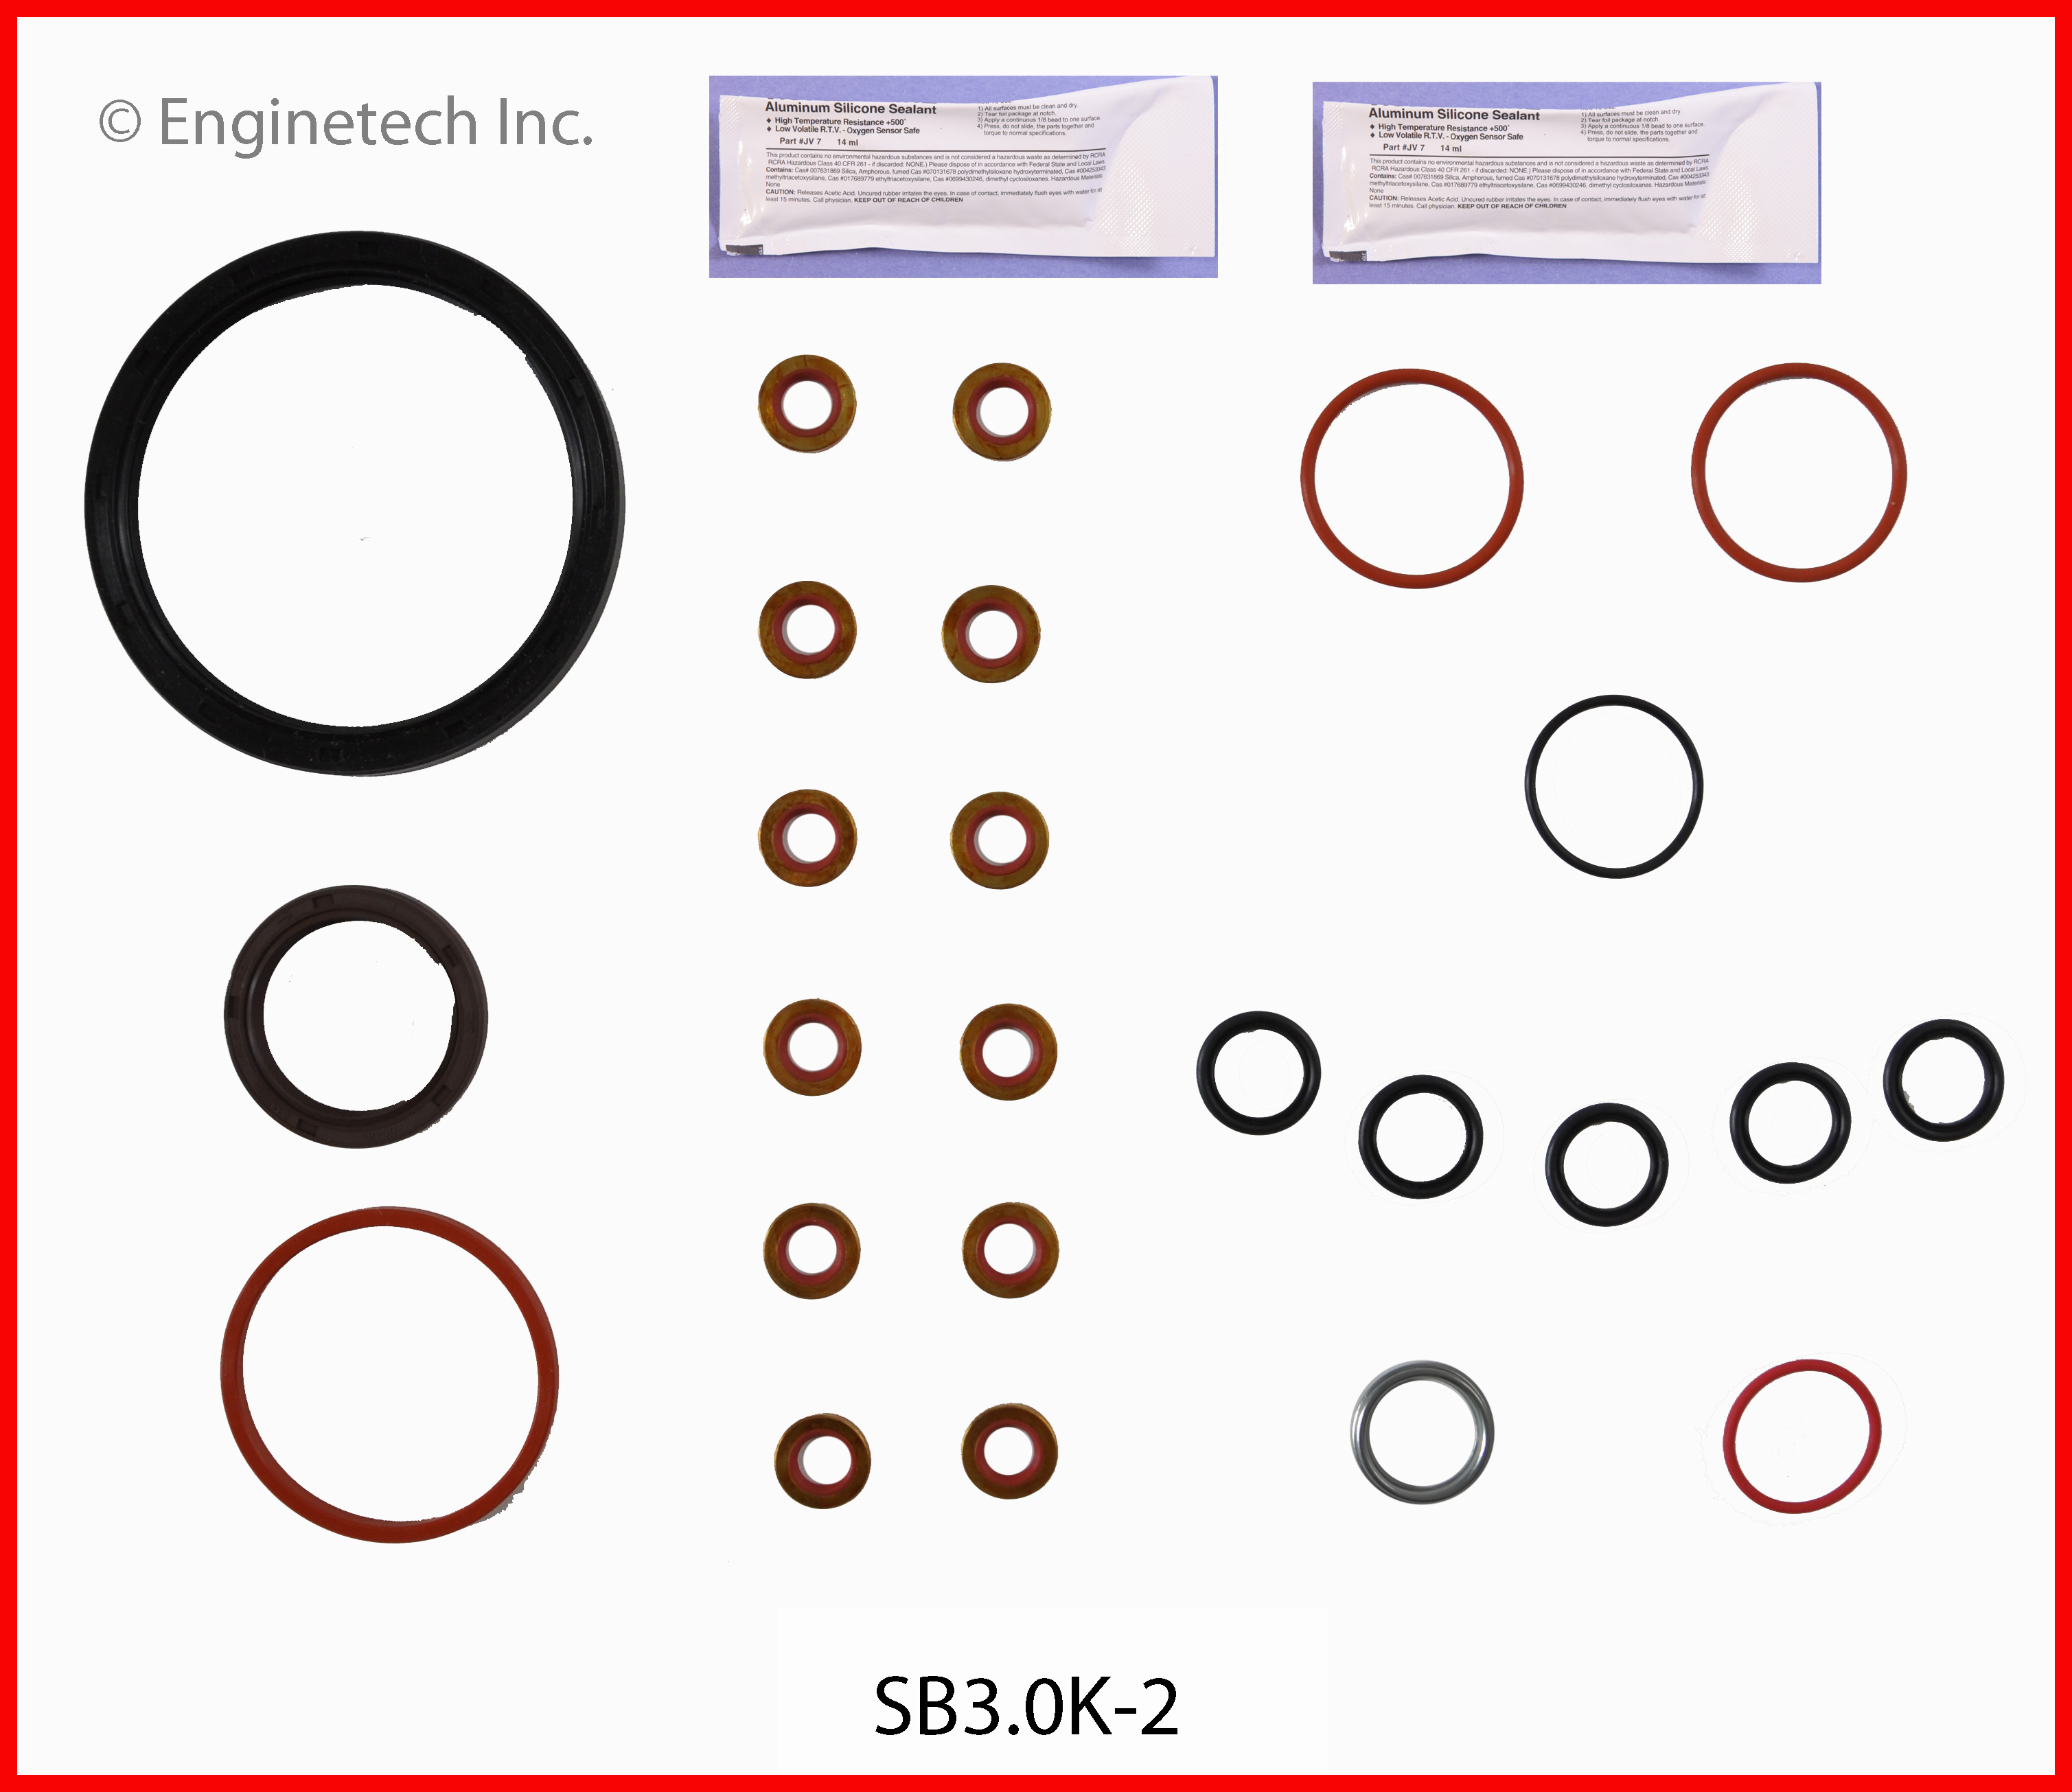 SB3.0K-2 Gasket Set - Full Enginetech